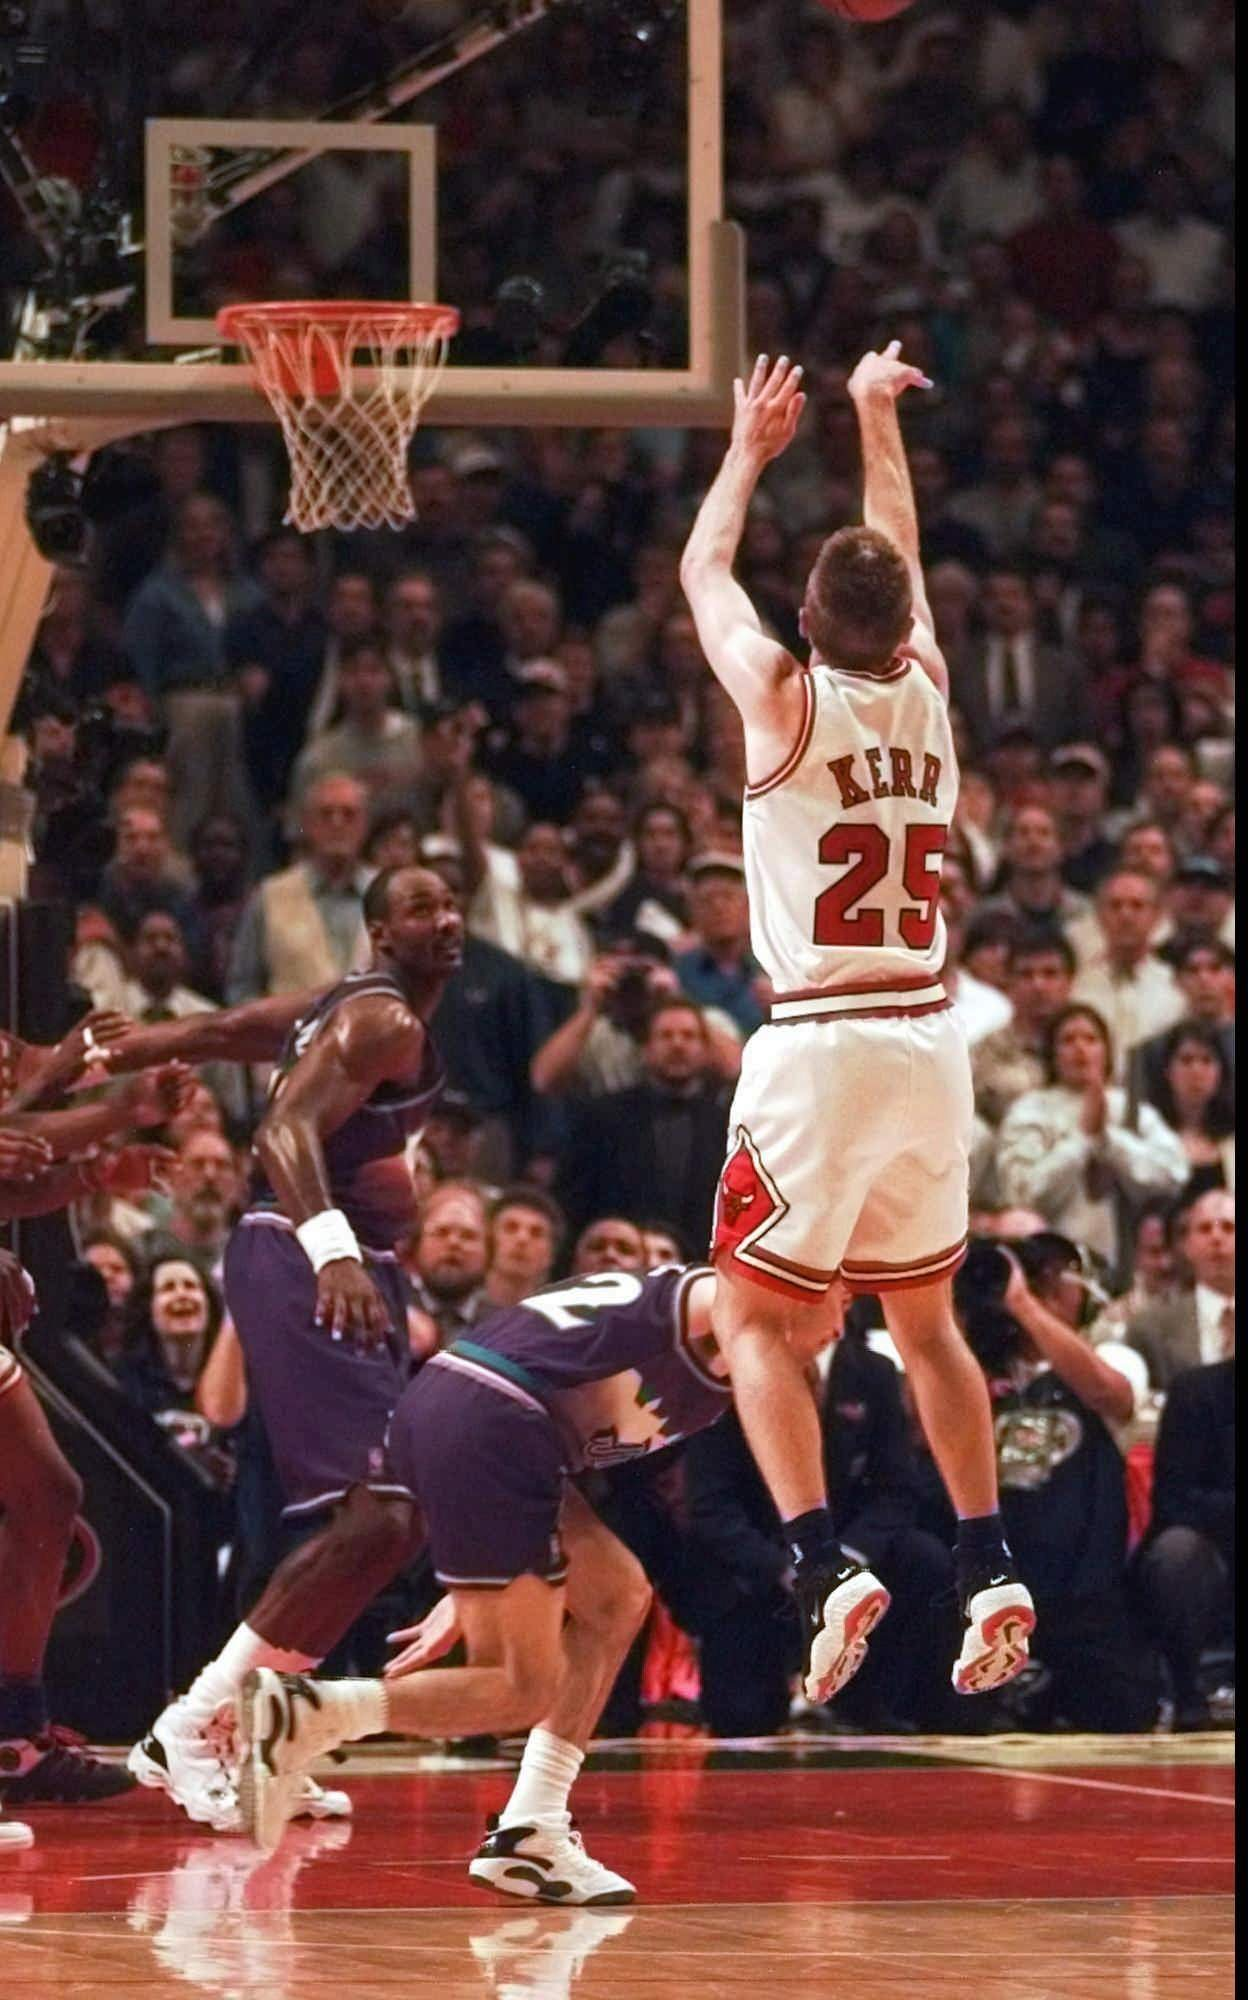 Steve Kerr looks back, 20 years later, at title-winning shot that changed his life - Chicago Tribune